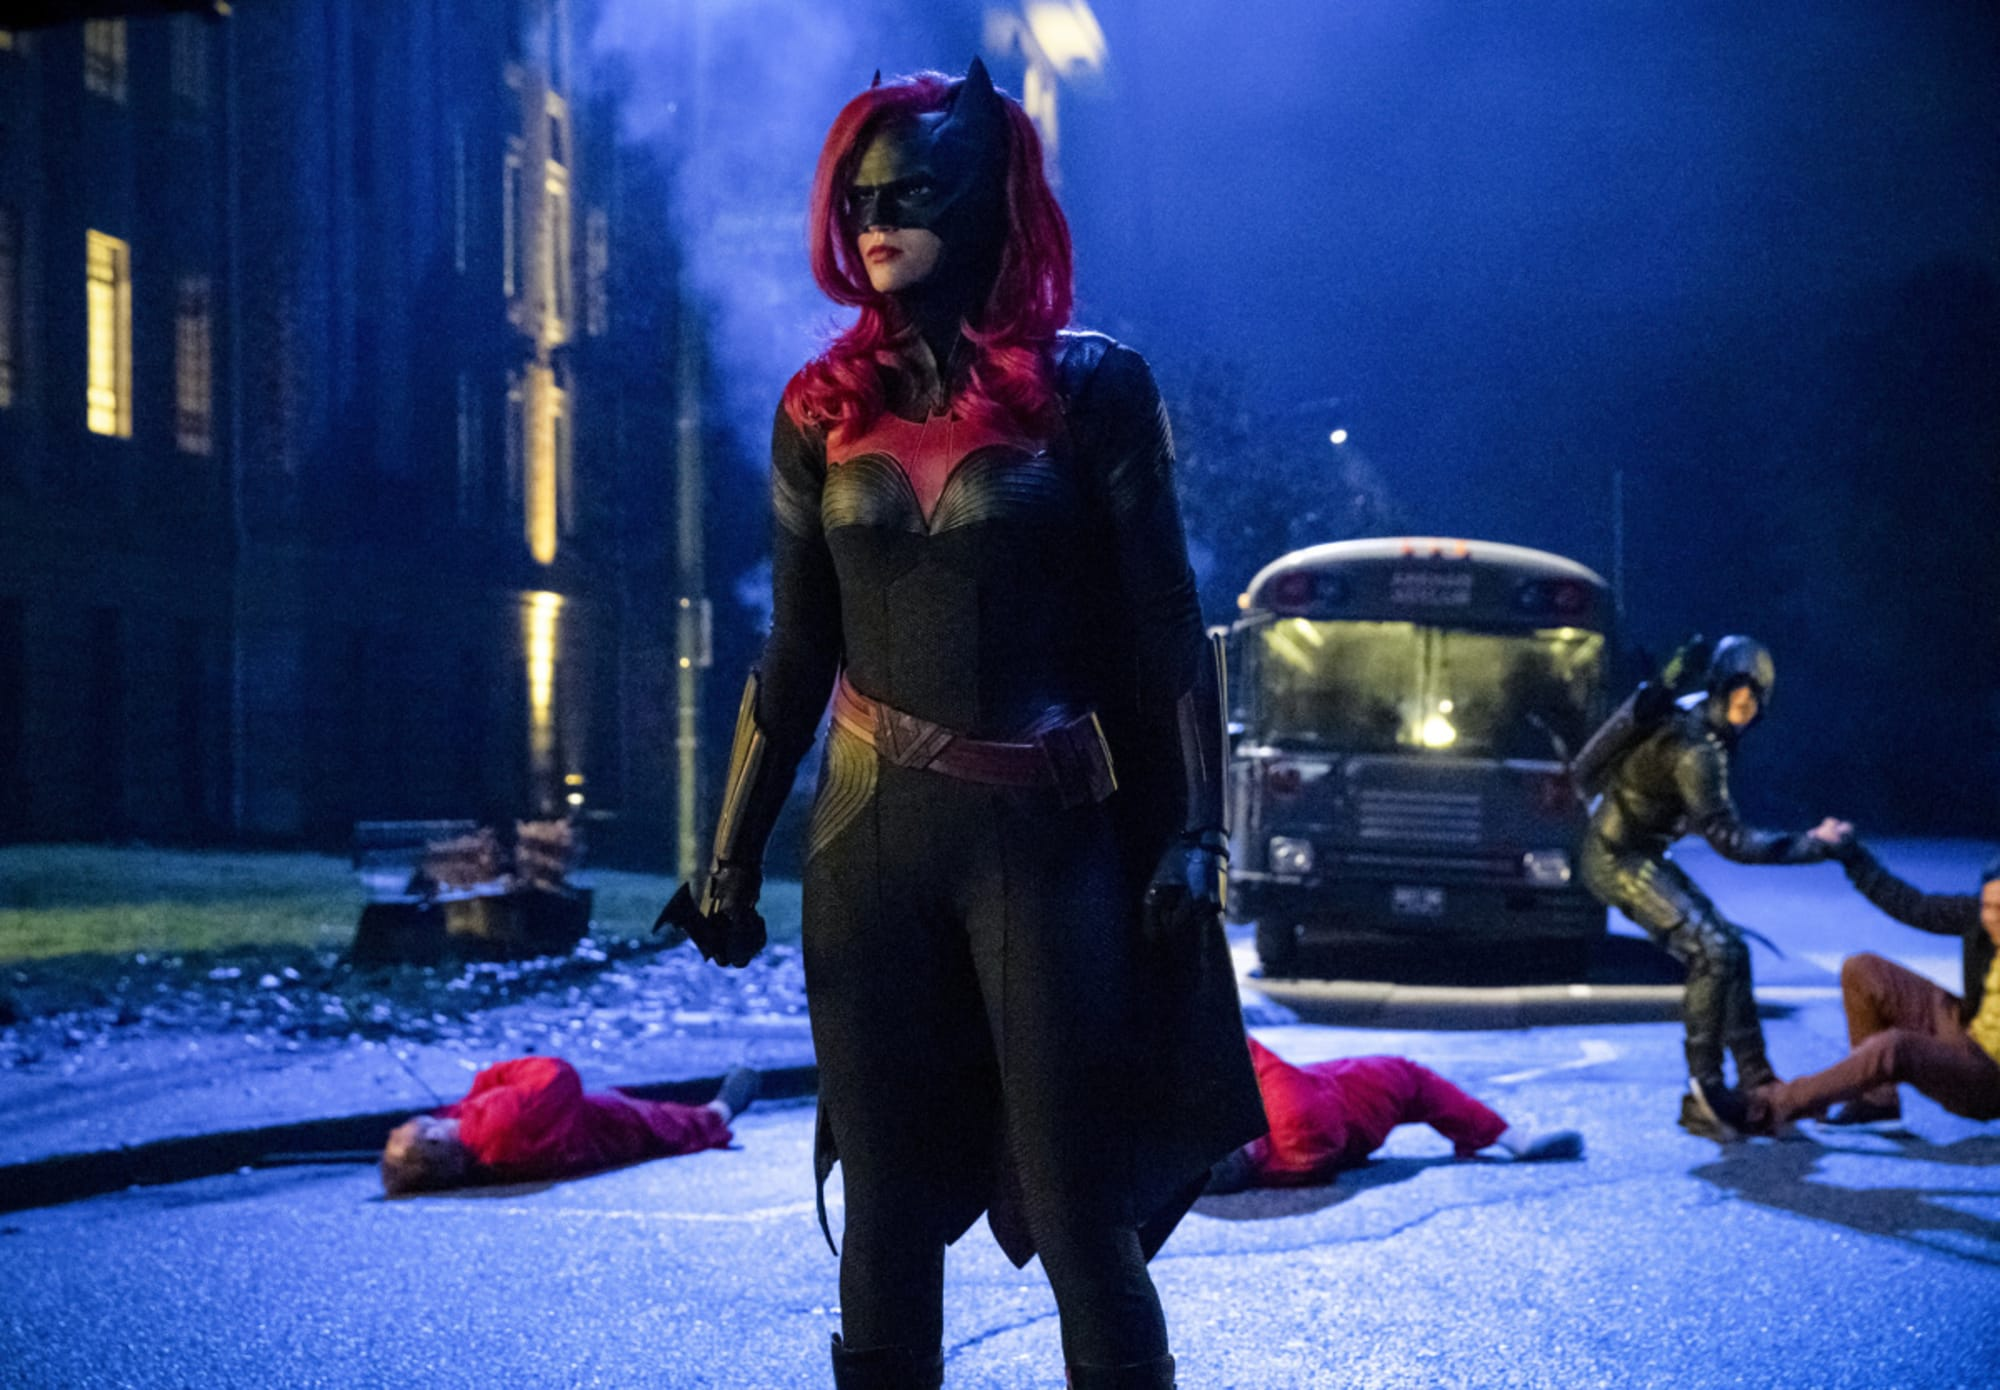 Batwoman: 5 series to read while waiting for season 2